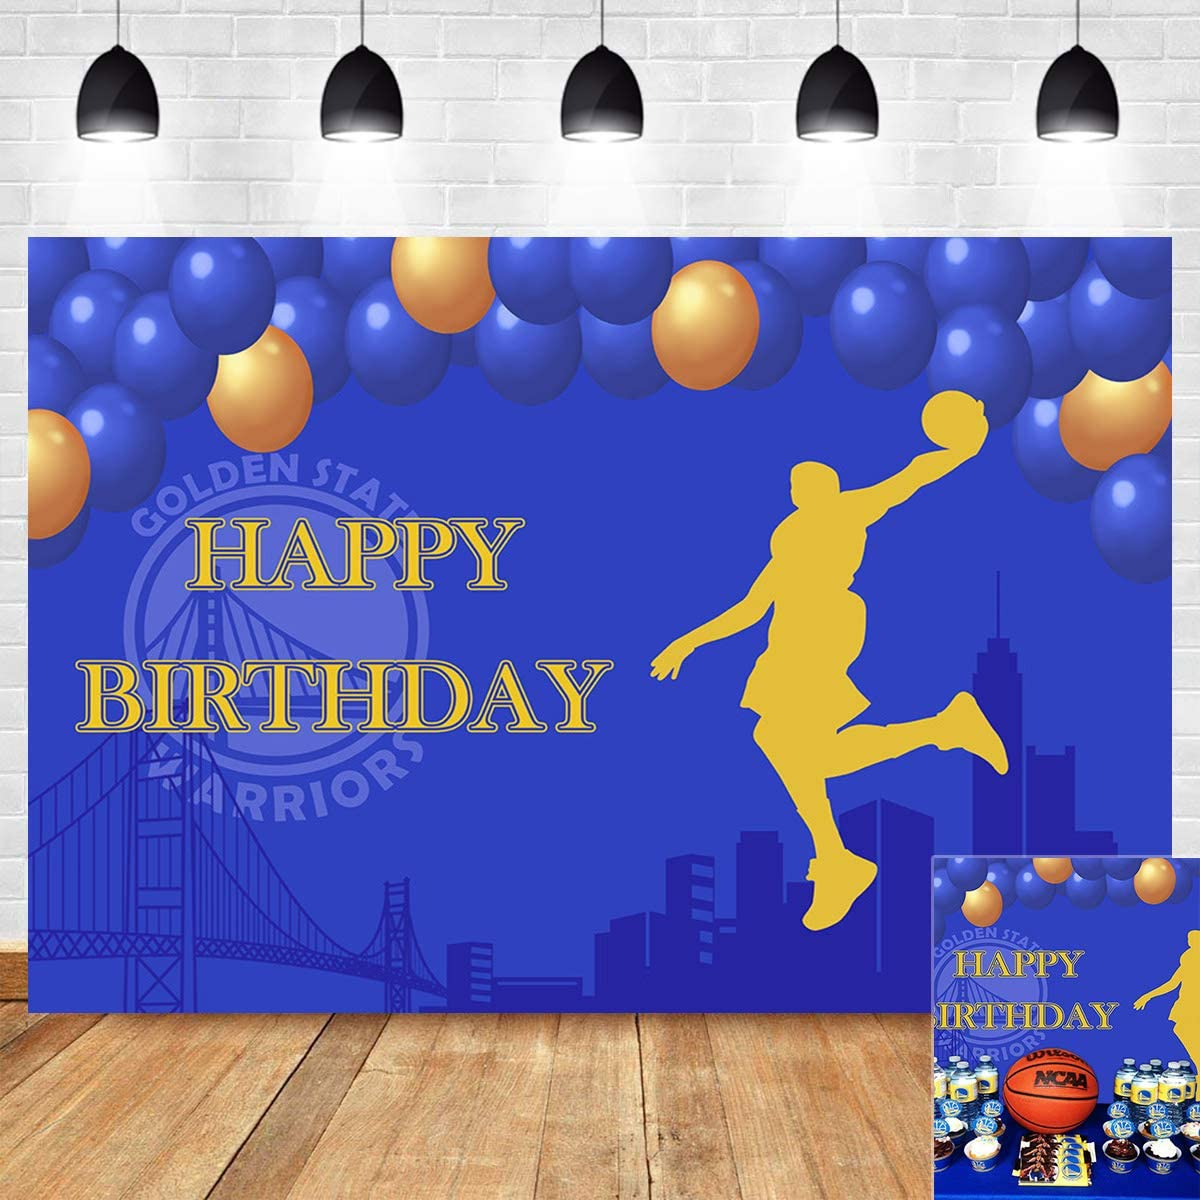 Sports 10x12 FT Backdrop Photographers,Basketball Players Dribbling Dunking Floater Vibrant Colored Uniforms Sportsmanship Background for Baby Birthday Party Wedding Vinyl Studio Props Photography